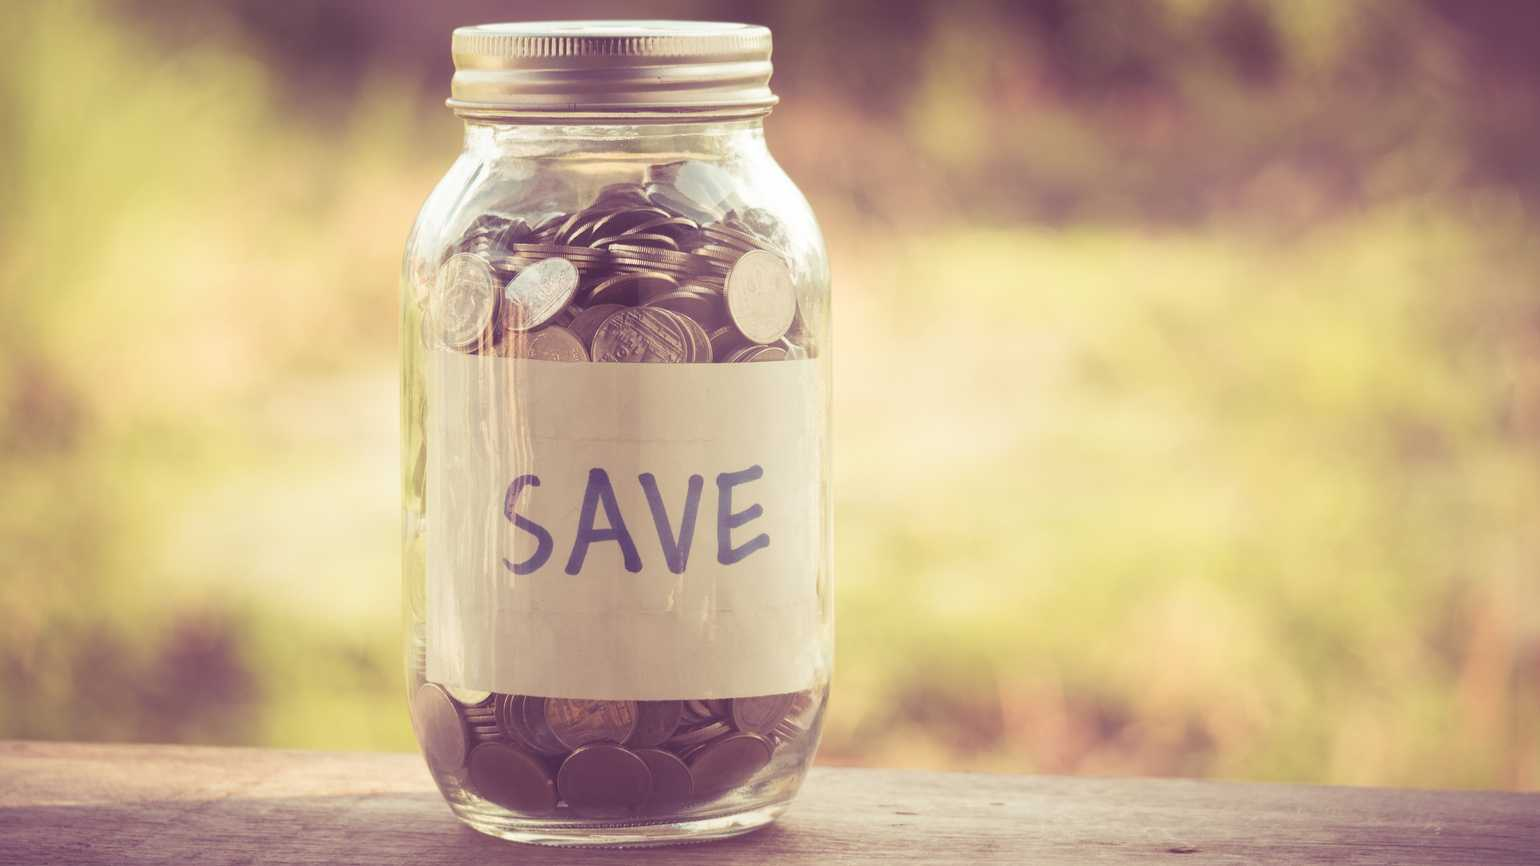 12 Easy Ways to Save Money